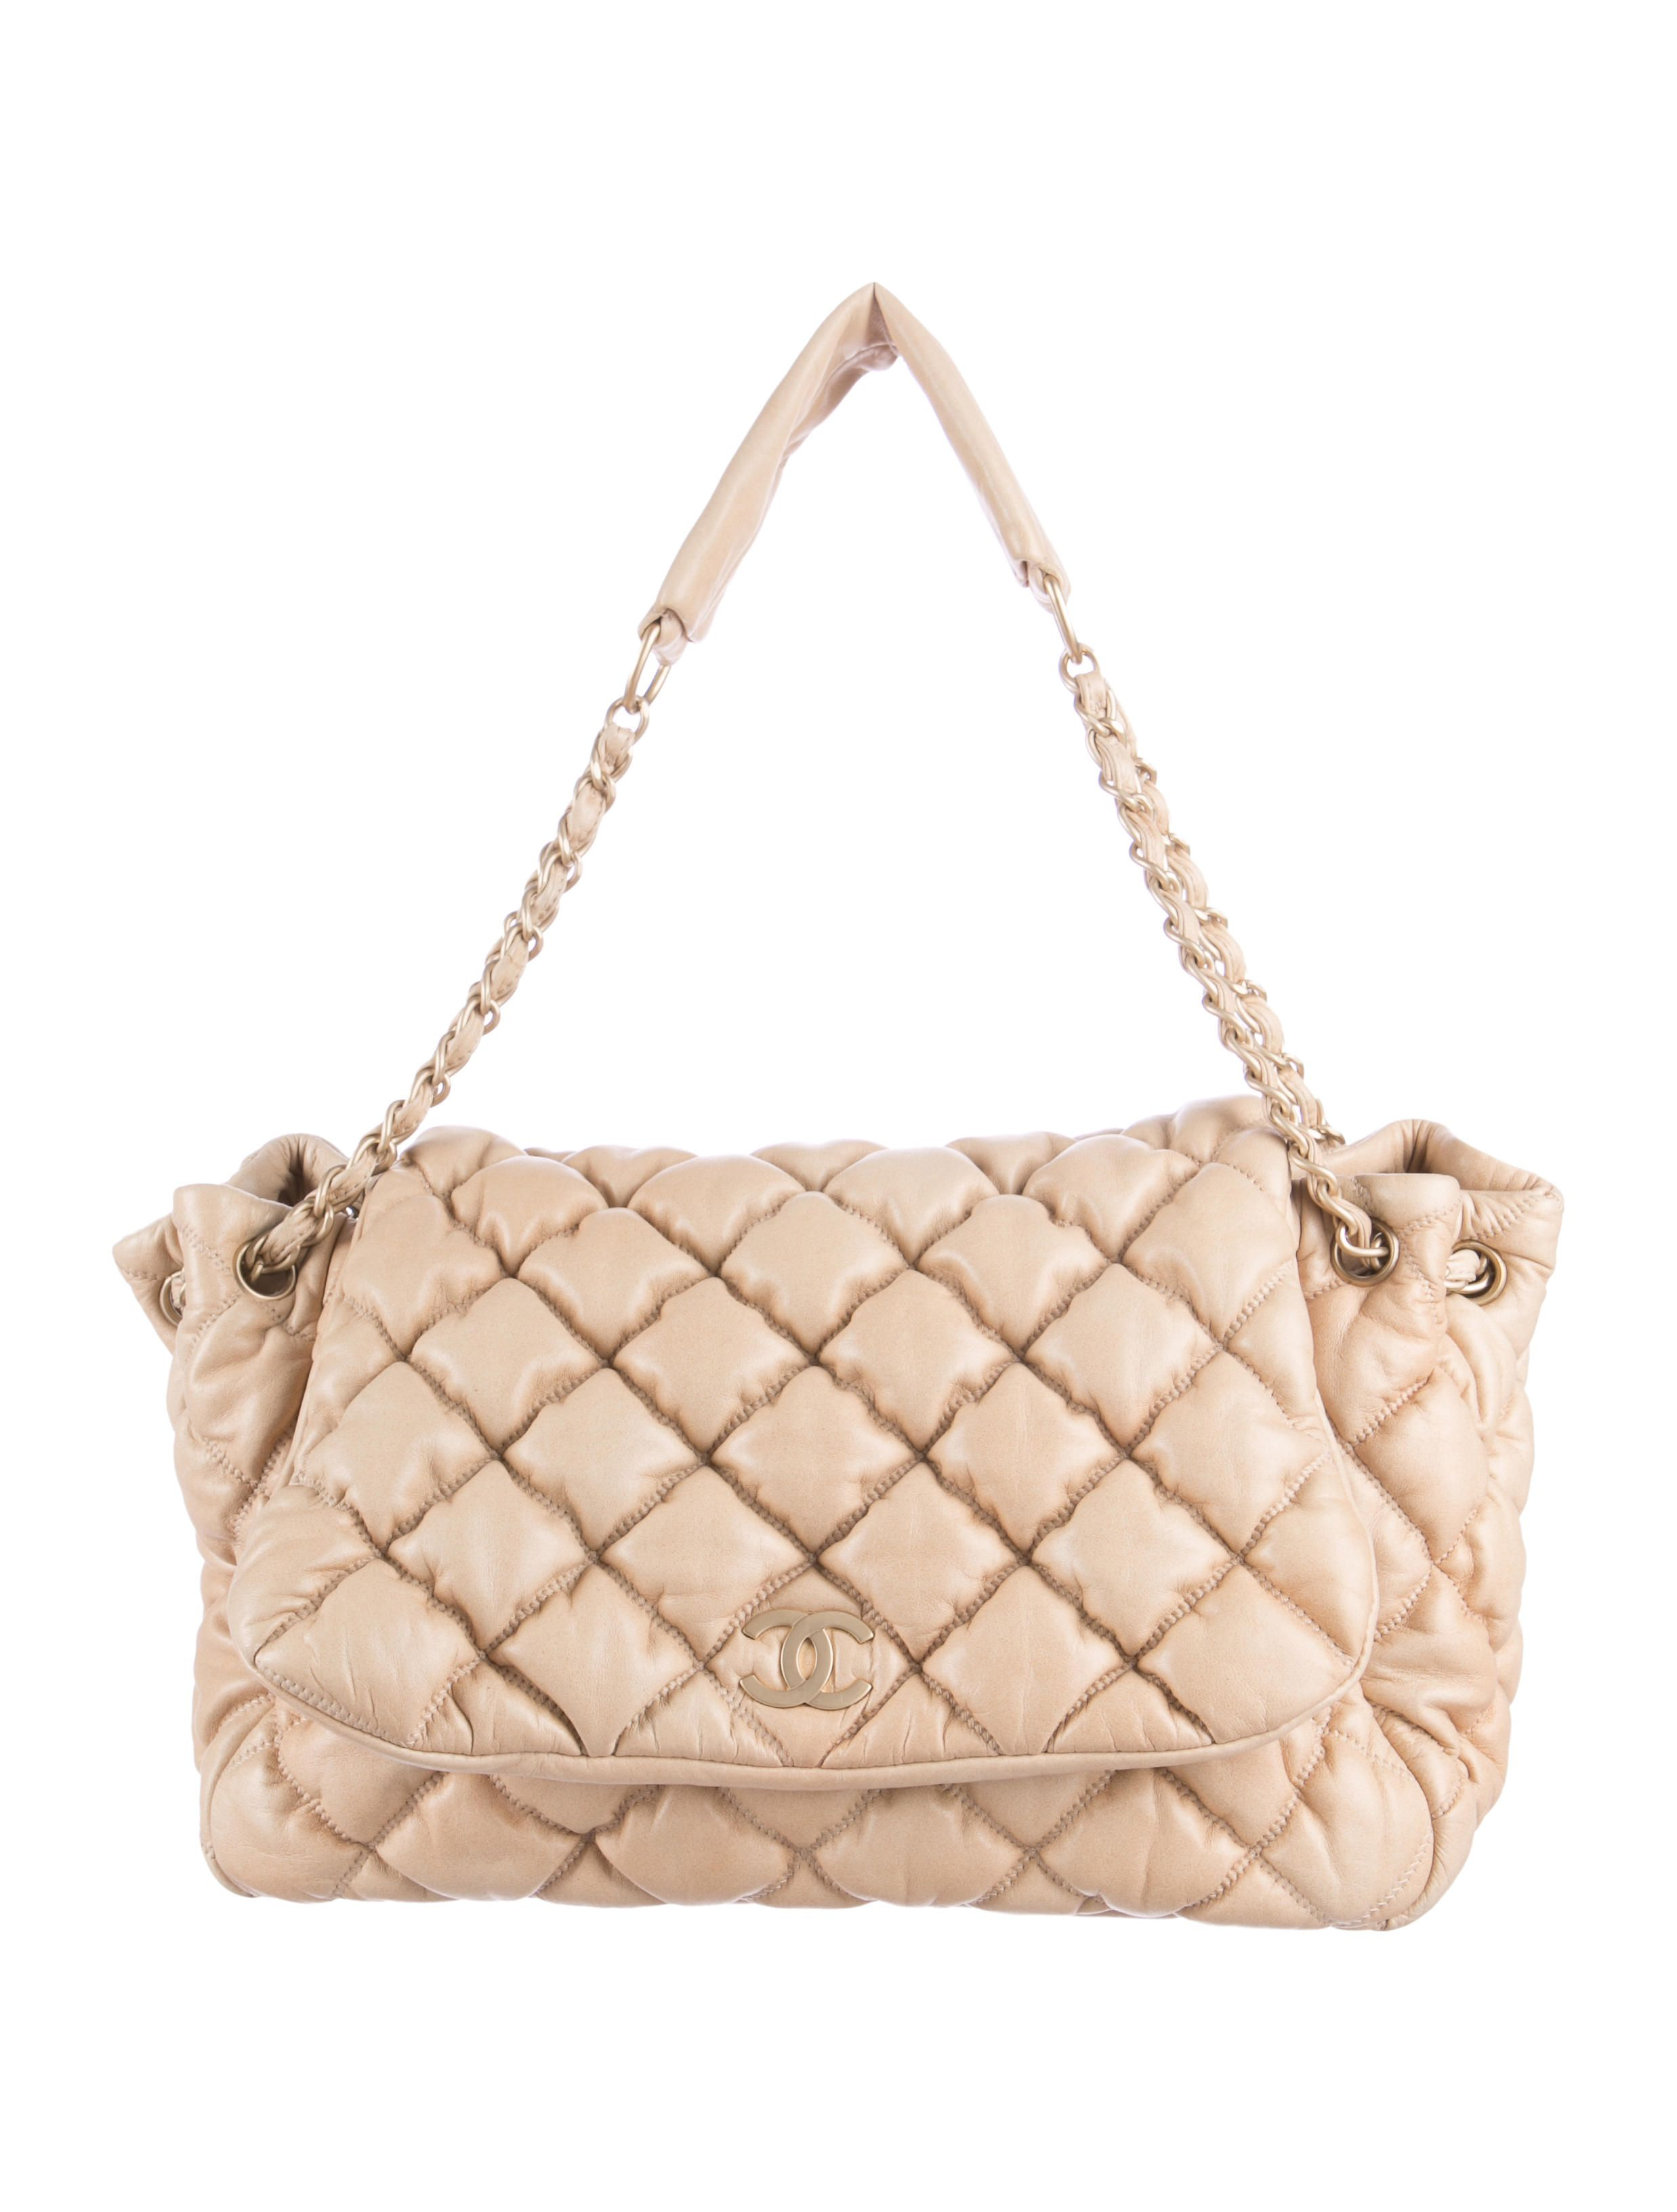 ccf36373a6ac Tan leather Chanel Bubble Quilt Accordion Flap Bag with satin gold-tone  hardware, dual chain-link and leather shoulder straps, tonal satin lining  with dual ...